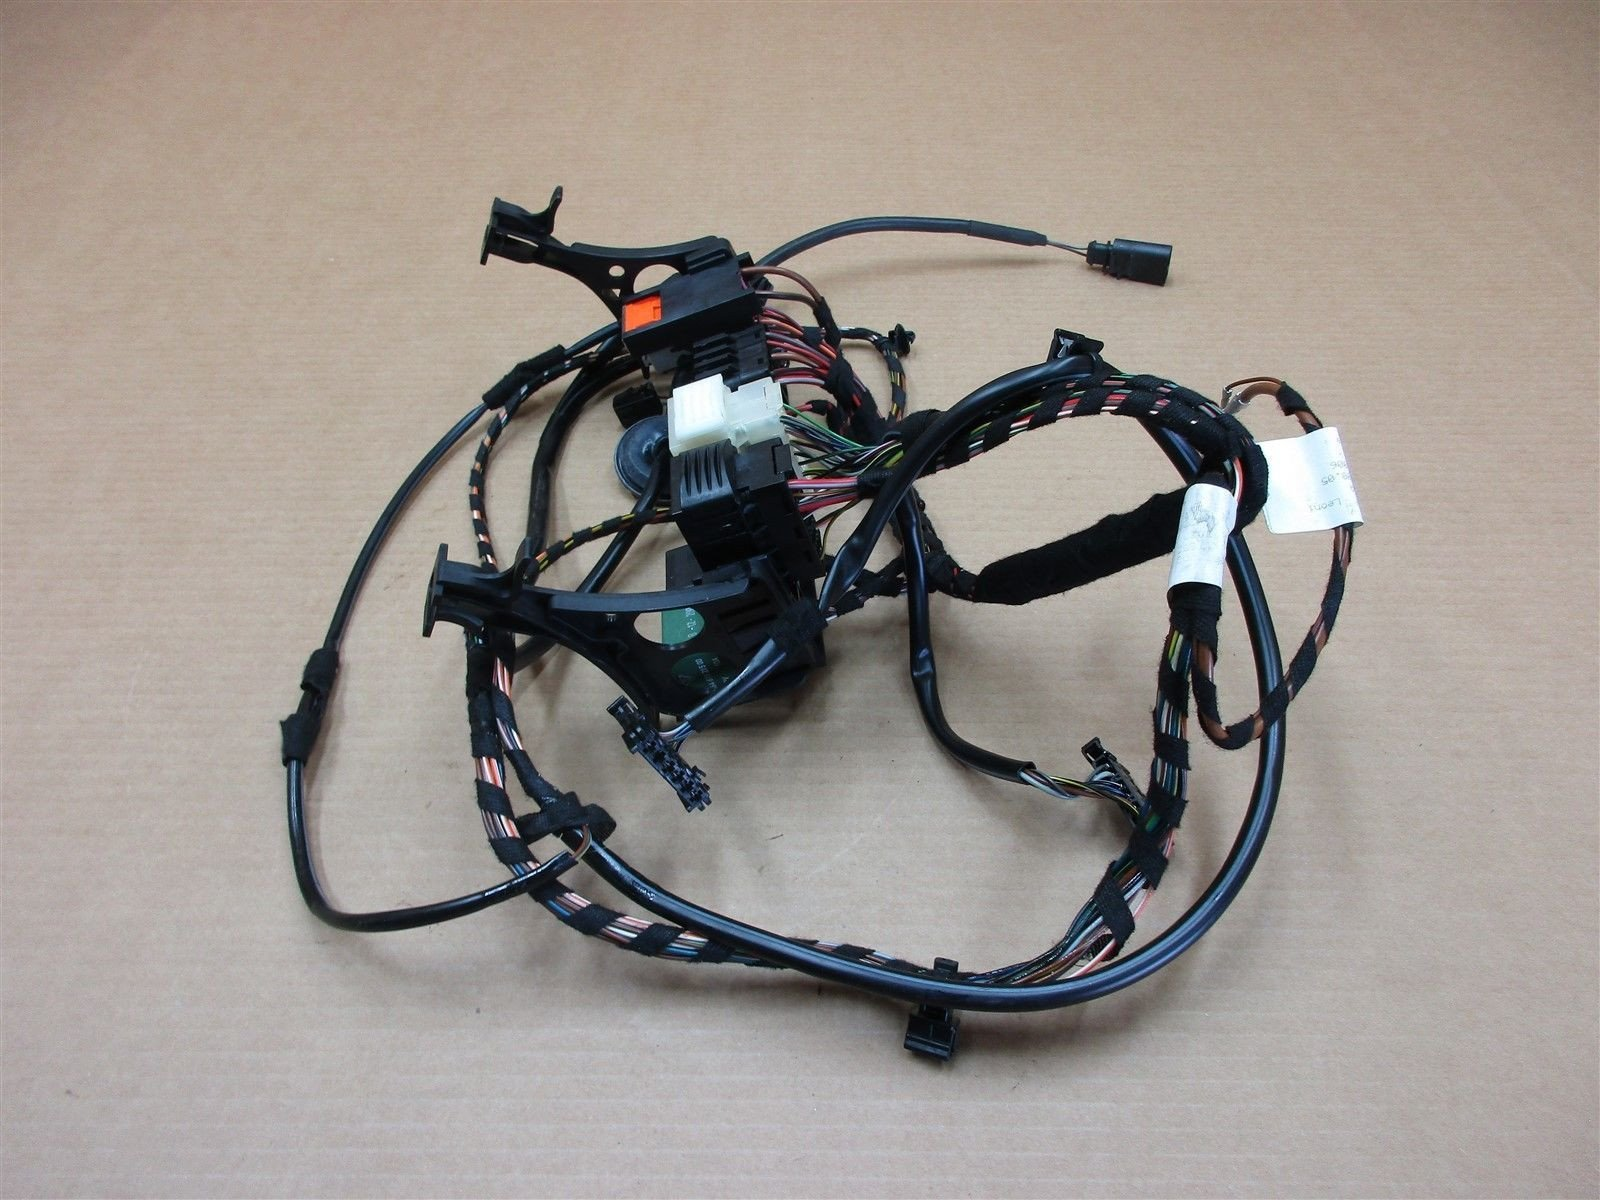 06 Boxster RWD Porsche 987 REAR WIRING HARNESS WIRE LOOM 59,133